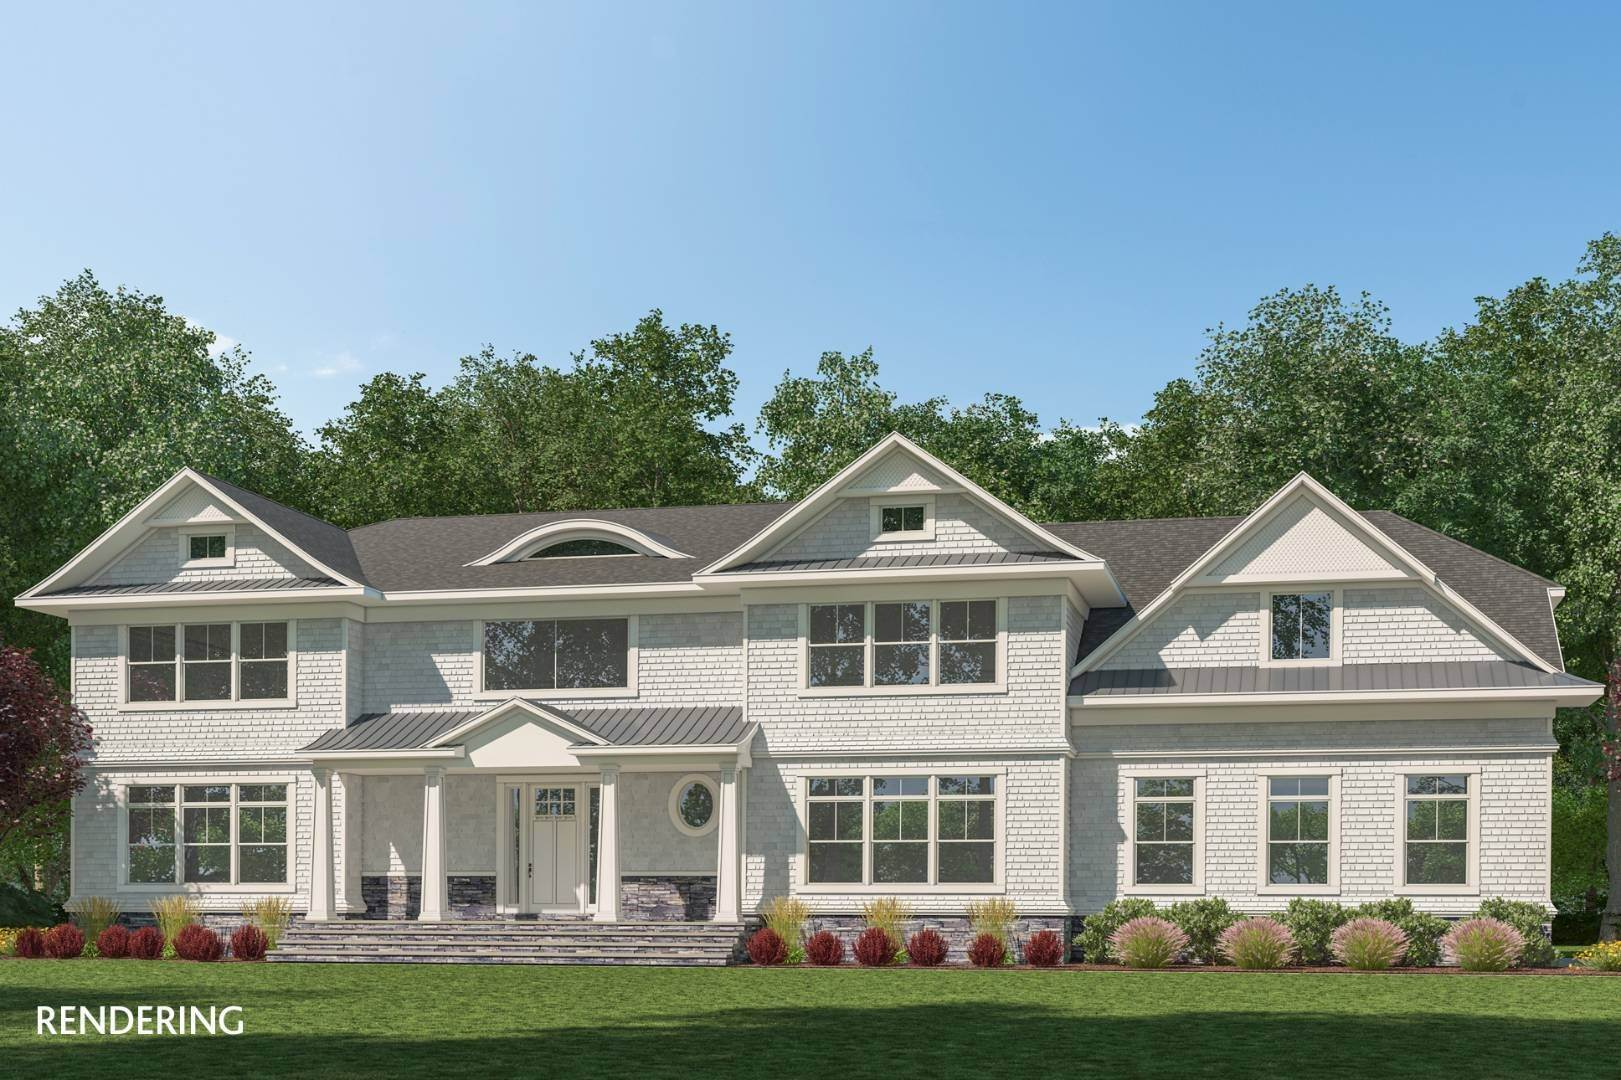 Single Family Home for Sale at New Construction In Sagaponack 9 Forest Crossing, Sagaponack, NY 11962